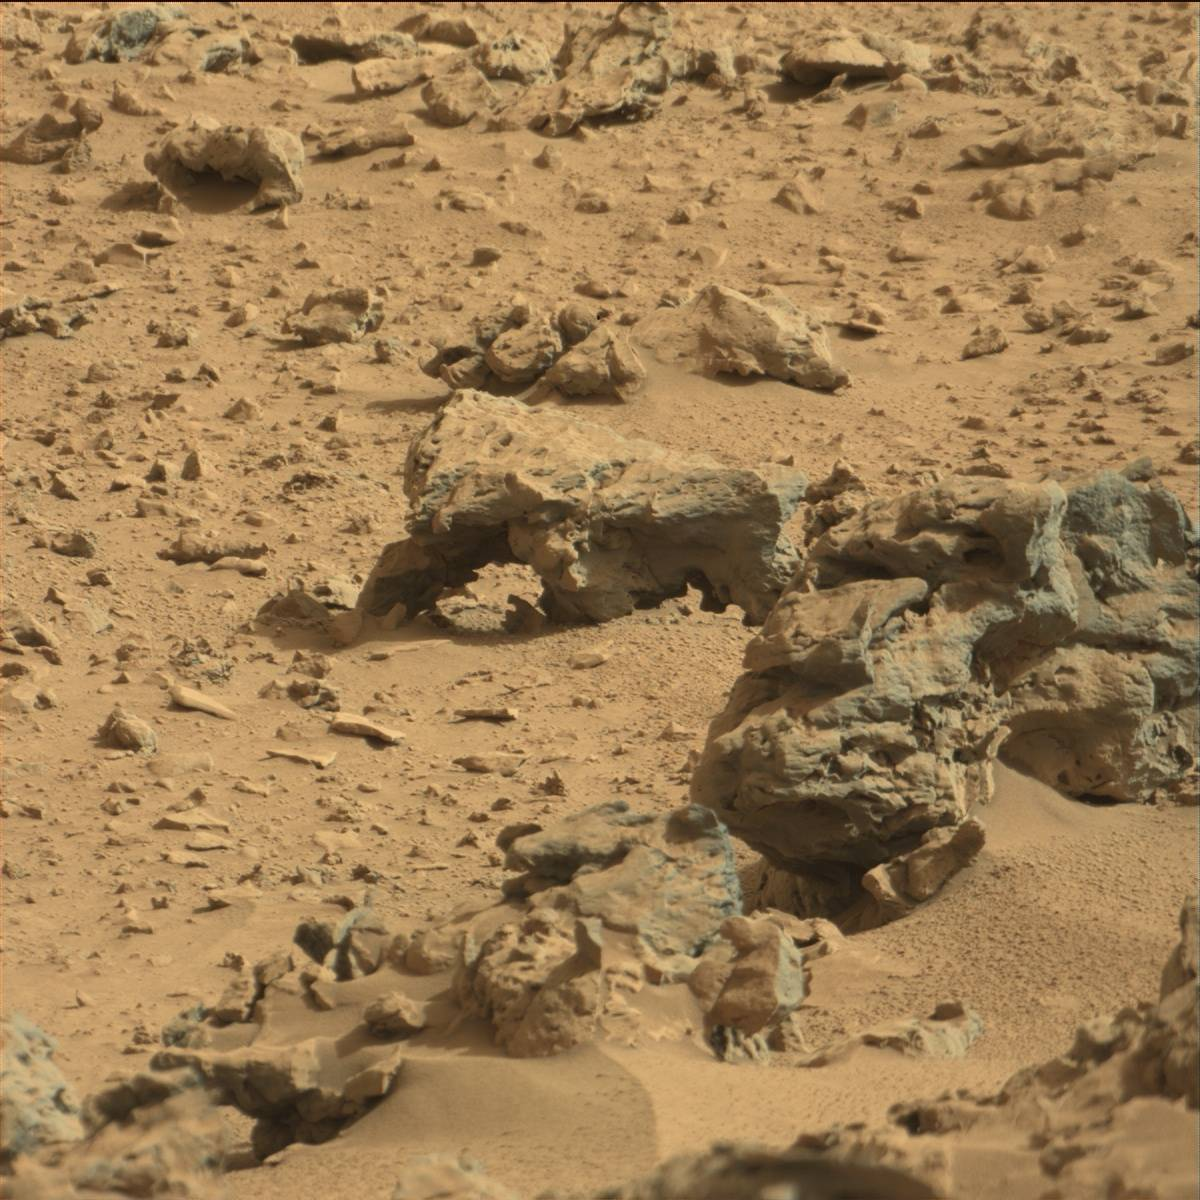 The Gothic Ruins of Mars: Ancient Ruins seen on Mars Rover ...